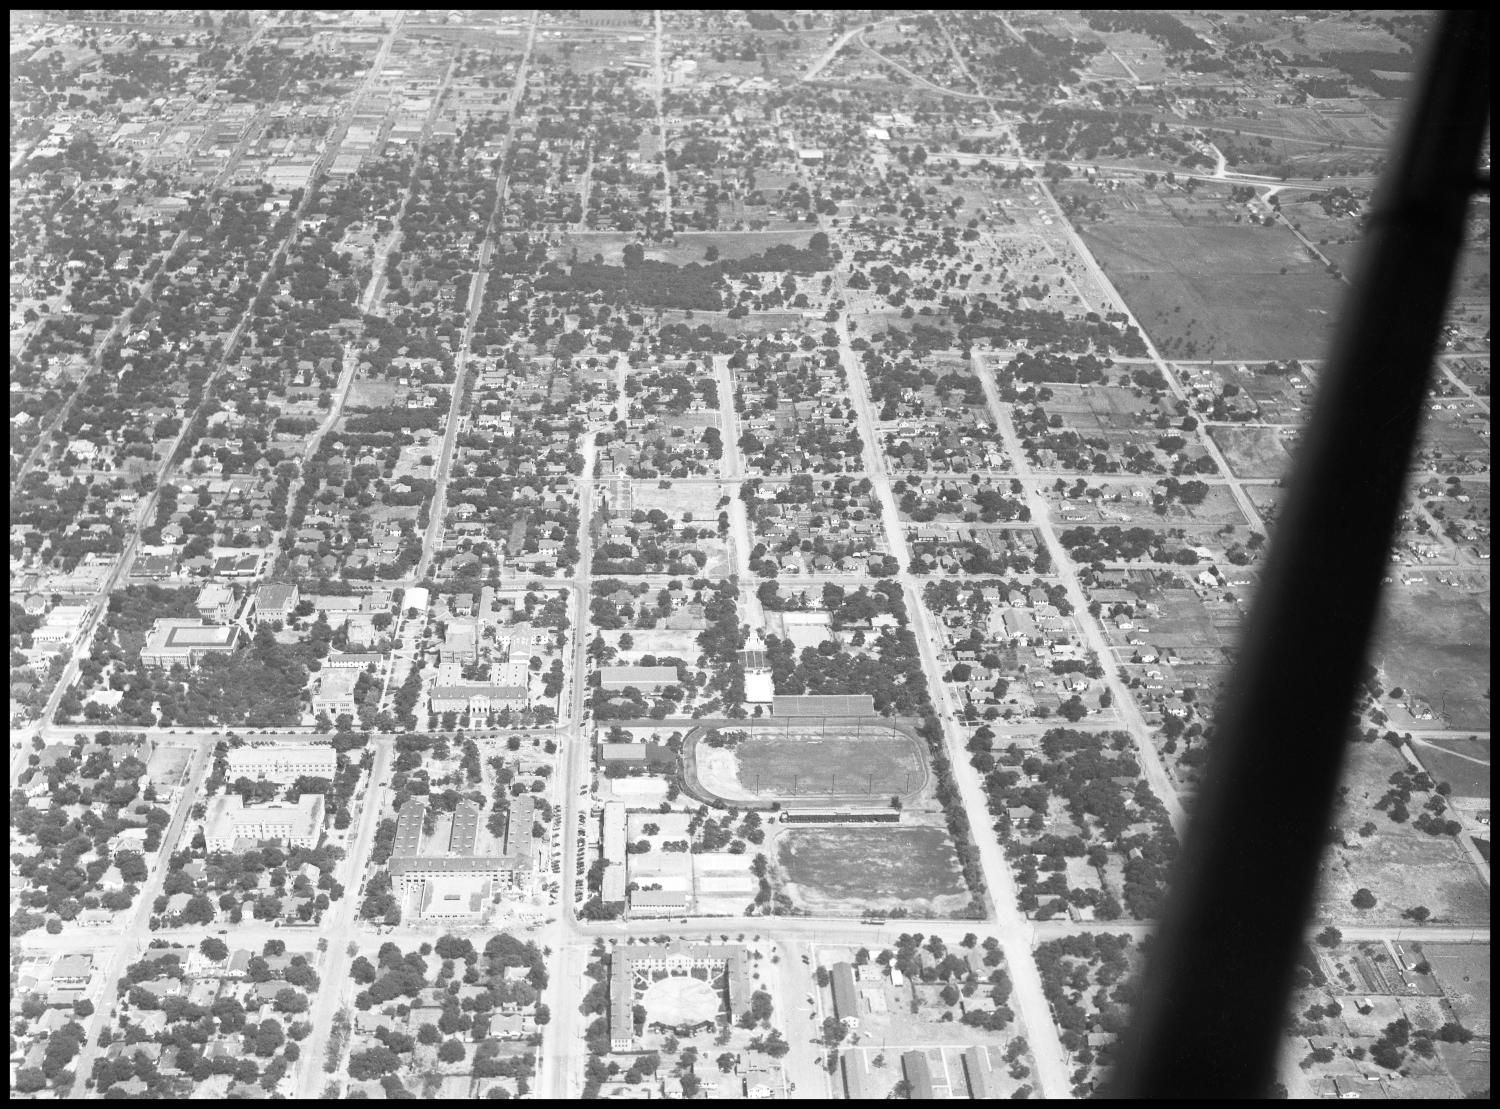 1947 Aerial View of campus. Welch and West Hickory street